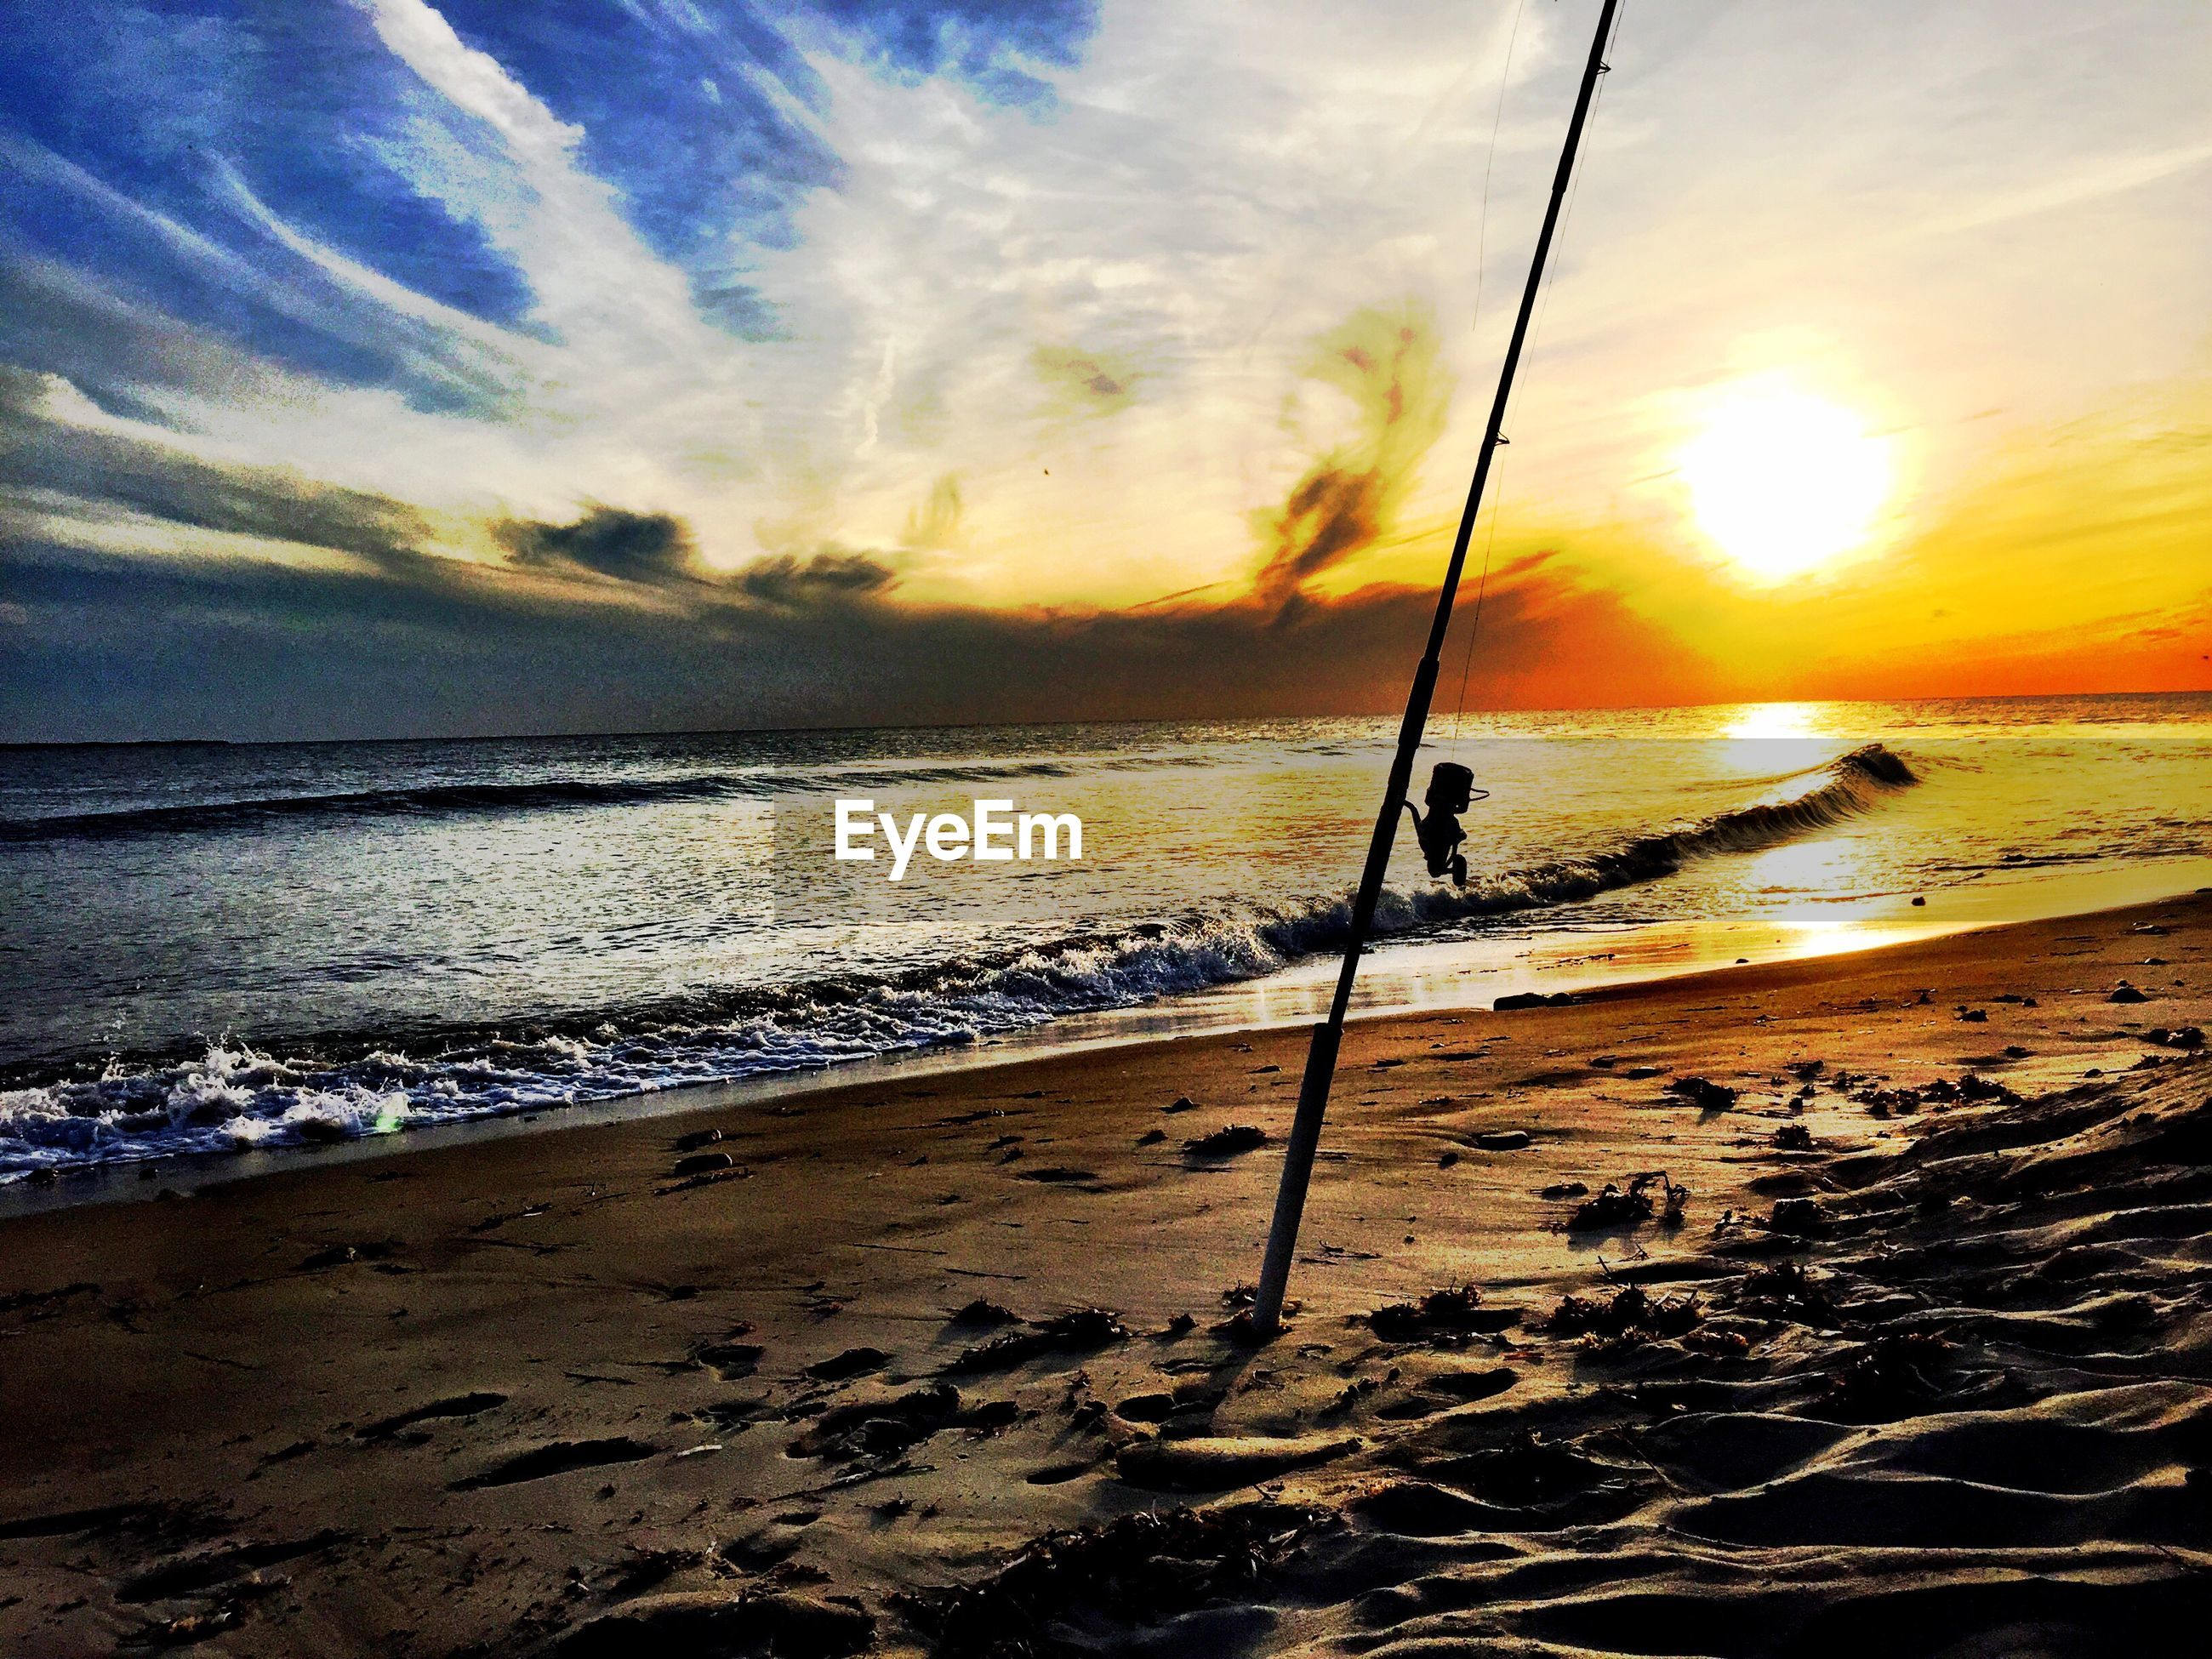 sea, beach, sunset, water, sky, cloud - sky, sand, horizon over water, nature, scenics, shore, outdoors, beauty in nature, no people, dramatic sky, wave, day